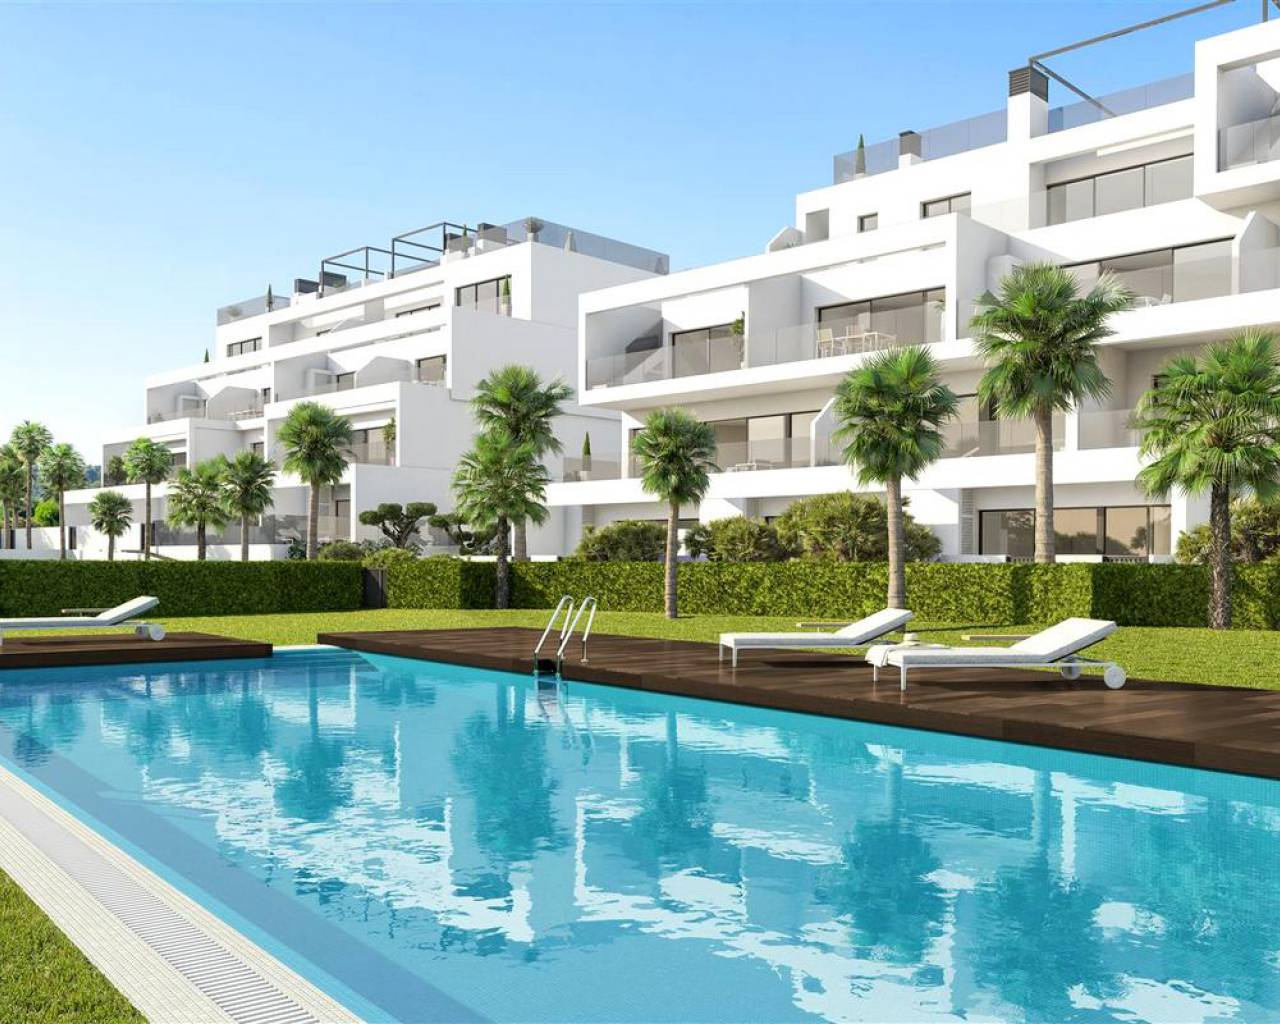 Apartment - Sale - La Manga - La Manga Playa